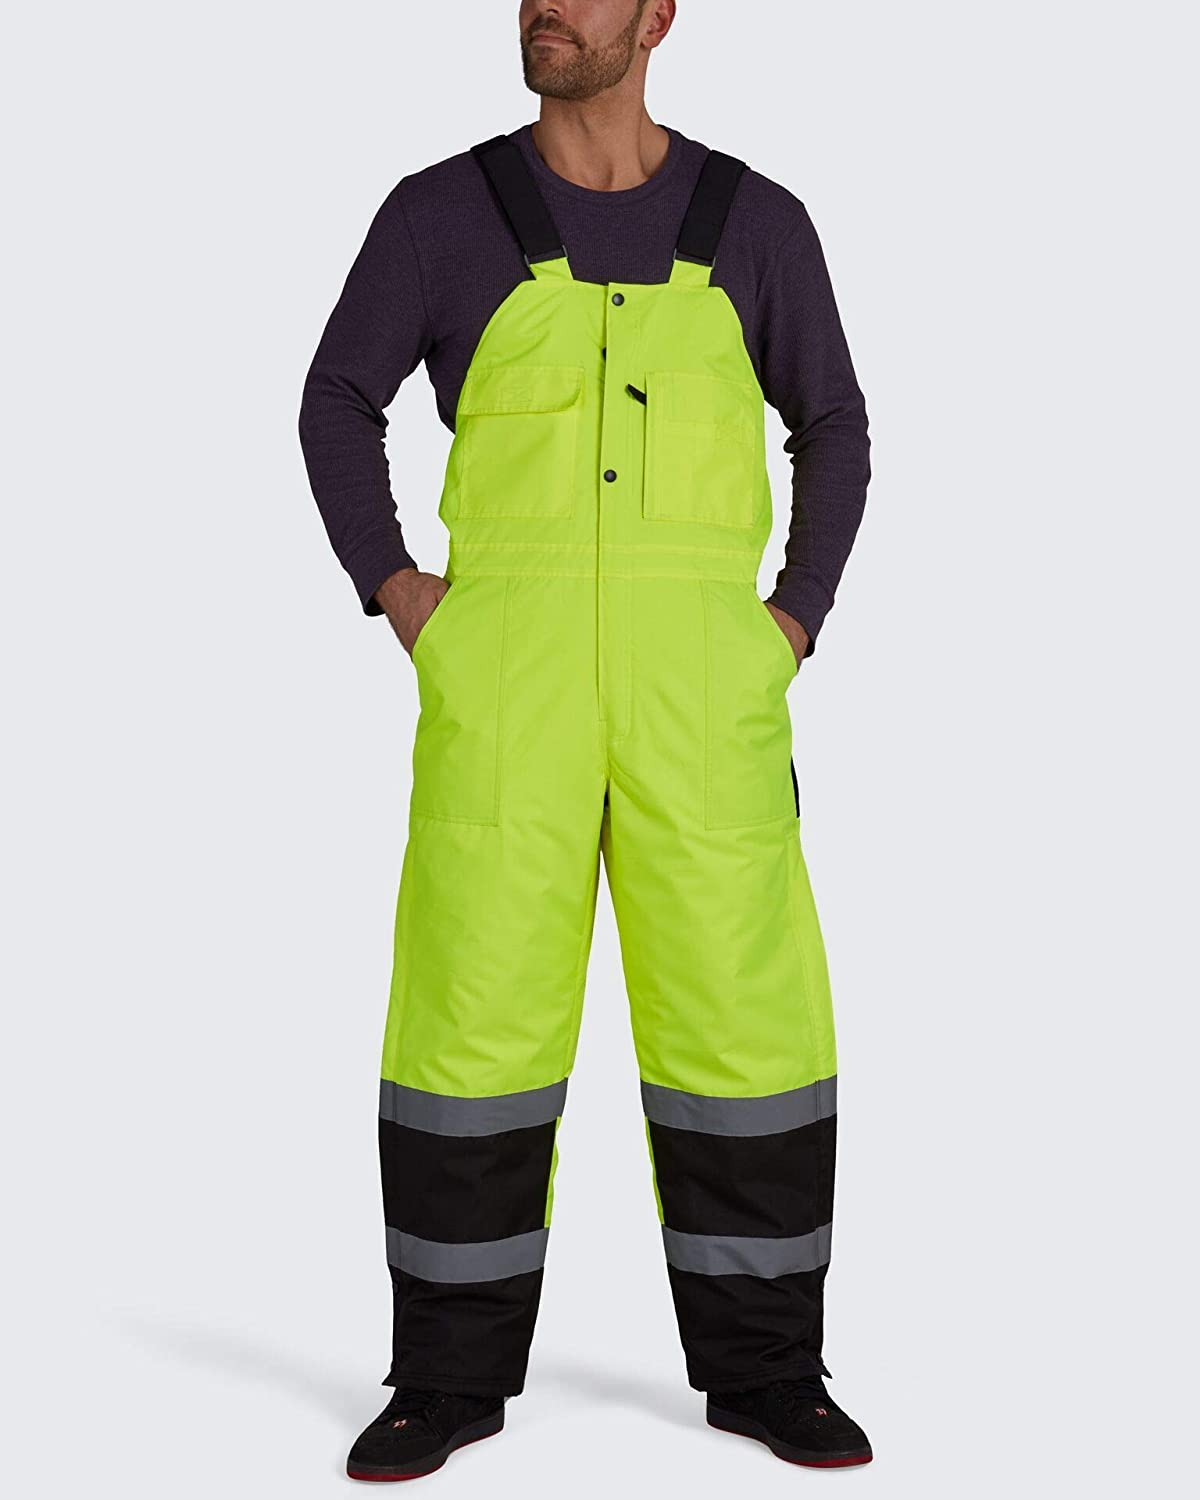 Brite Safety Lined Bib Overall - Hi Vis Overalls For Men and Women - ANSI 107 Class E Compliant Waterproof Work Wear